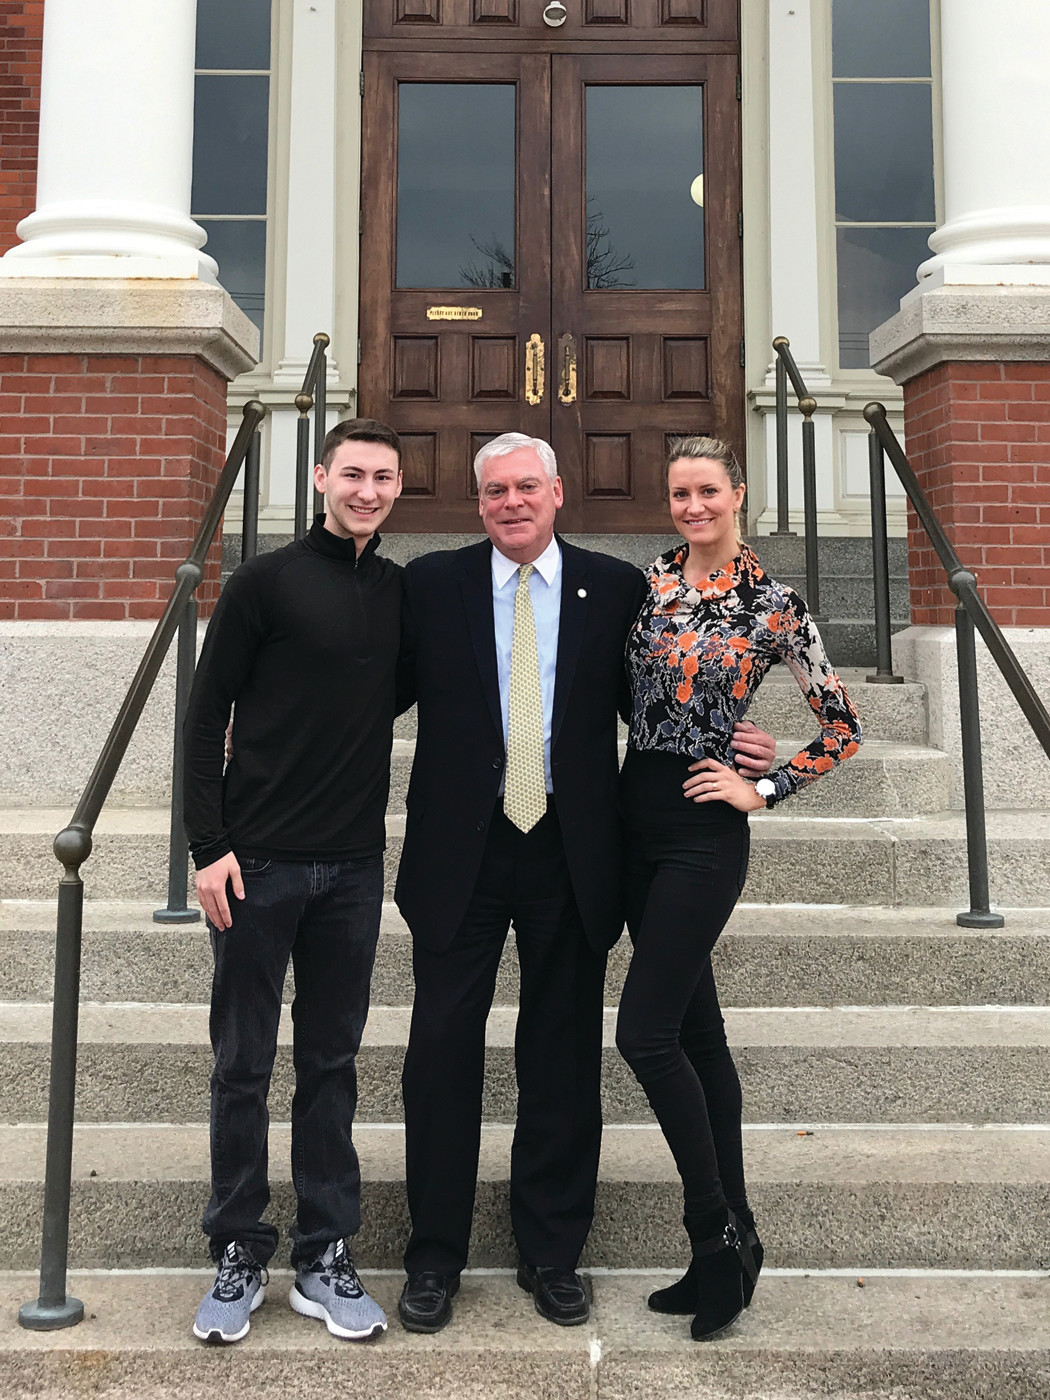 THAT DANCING FEELING: Mayor Scott Avedisian welcomed T.J. Kyle to Warwick City Hall in late March along with his dance partner, Jaimee Tuft, to congratulate him for all the success he has achieved in his young dancing career.